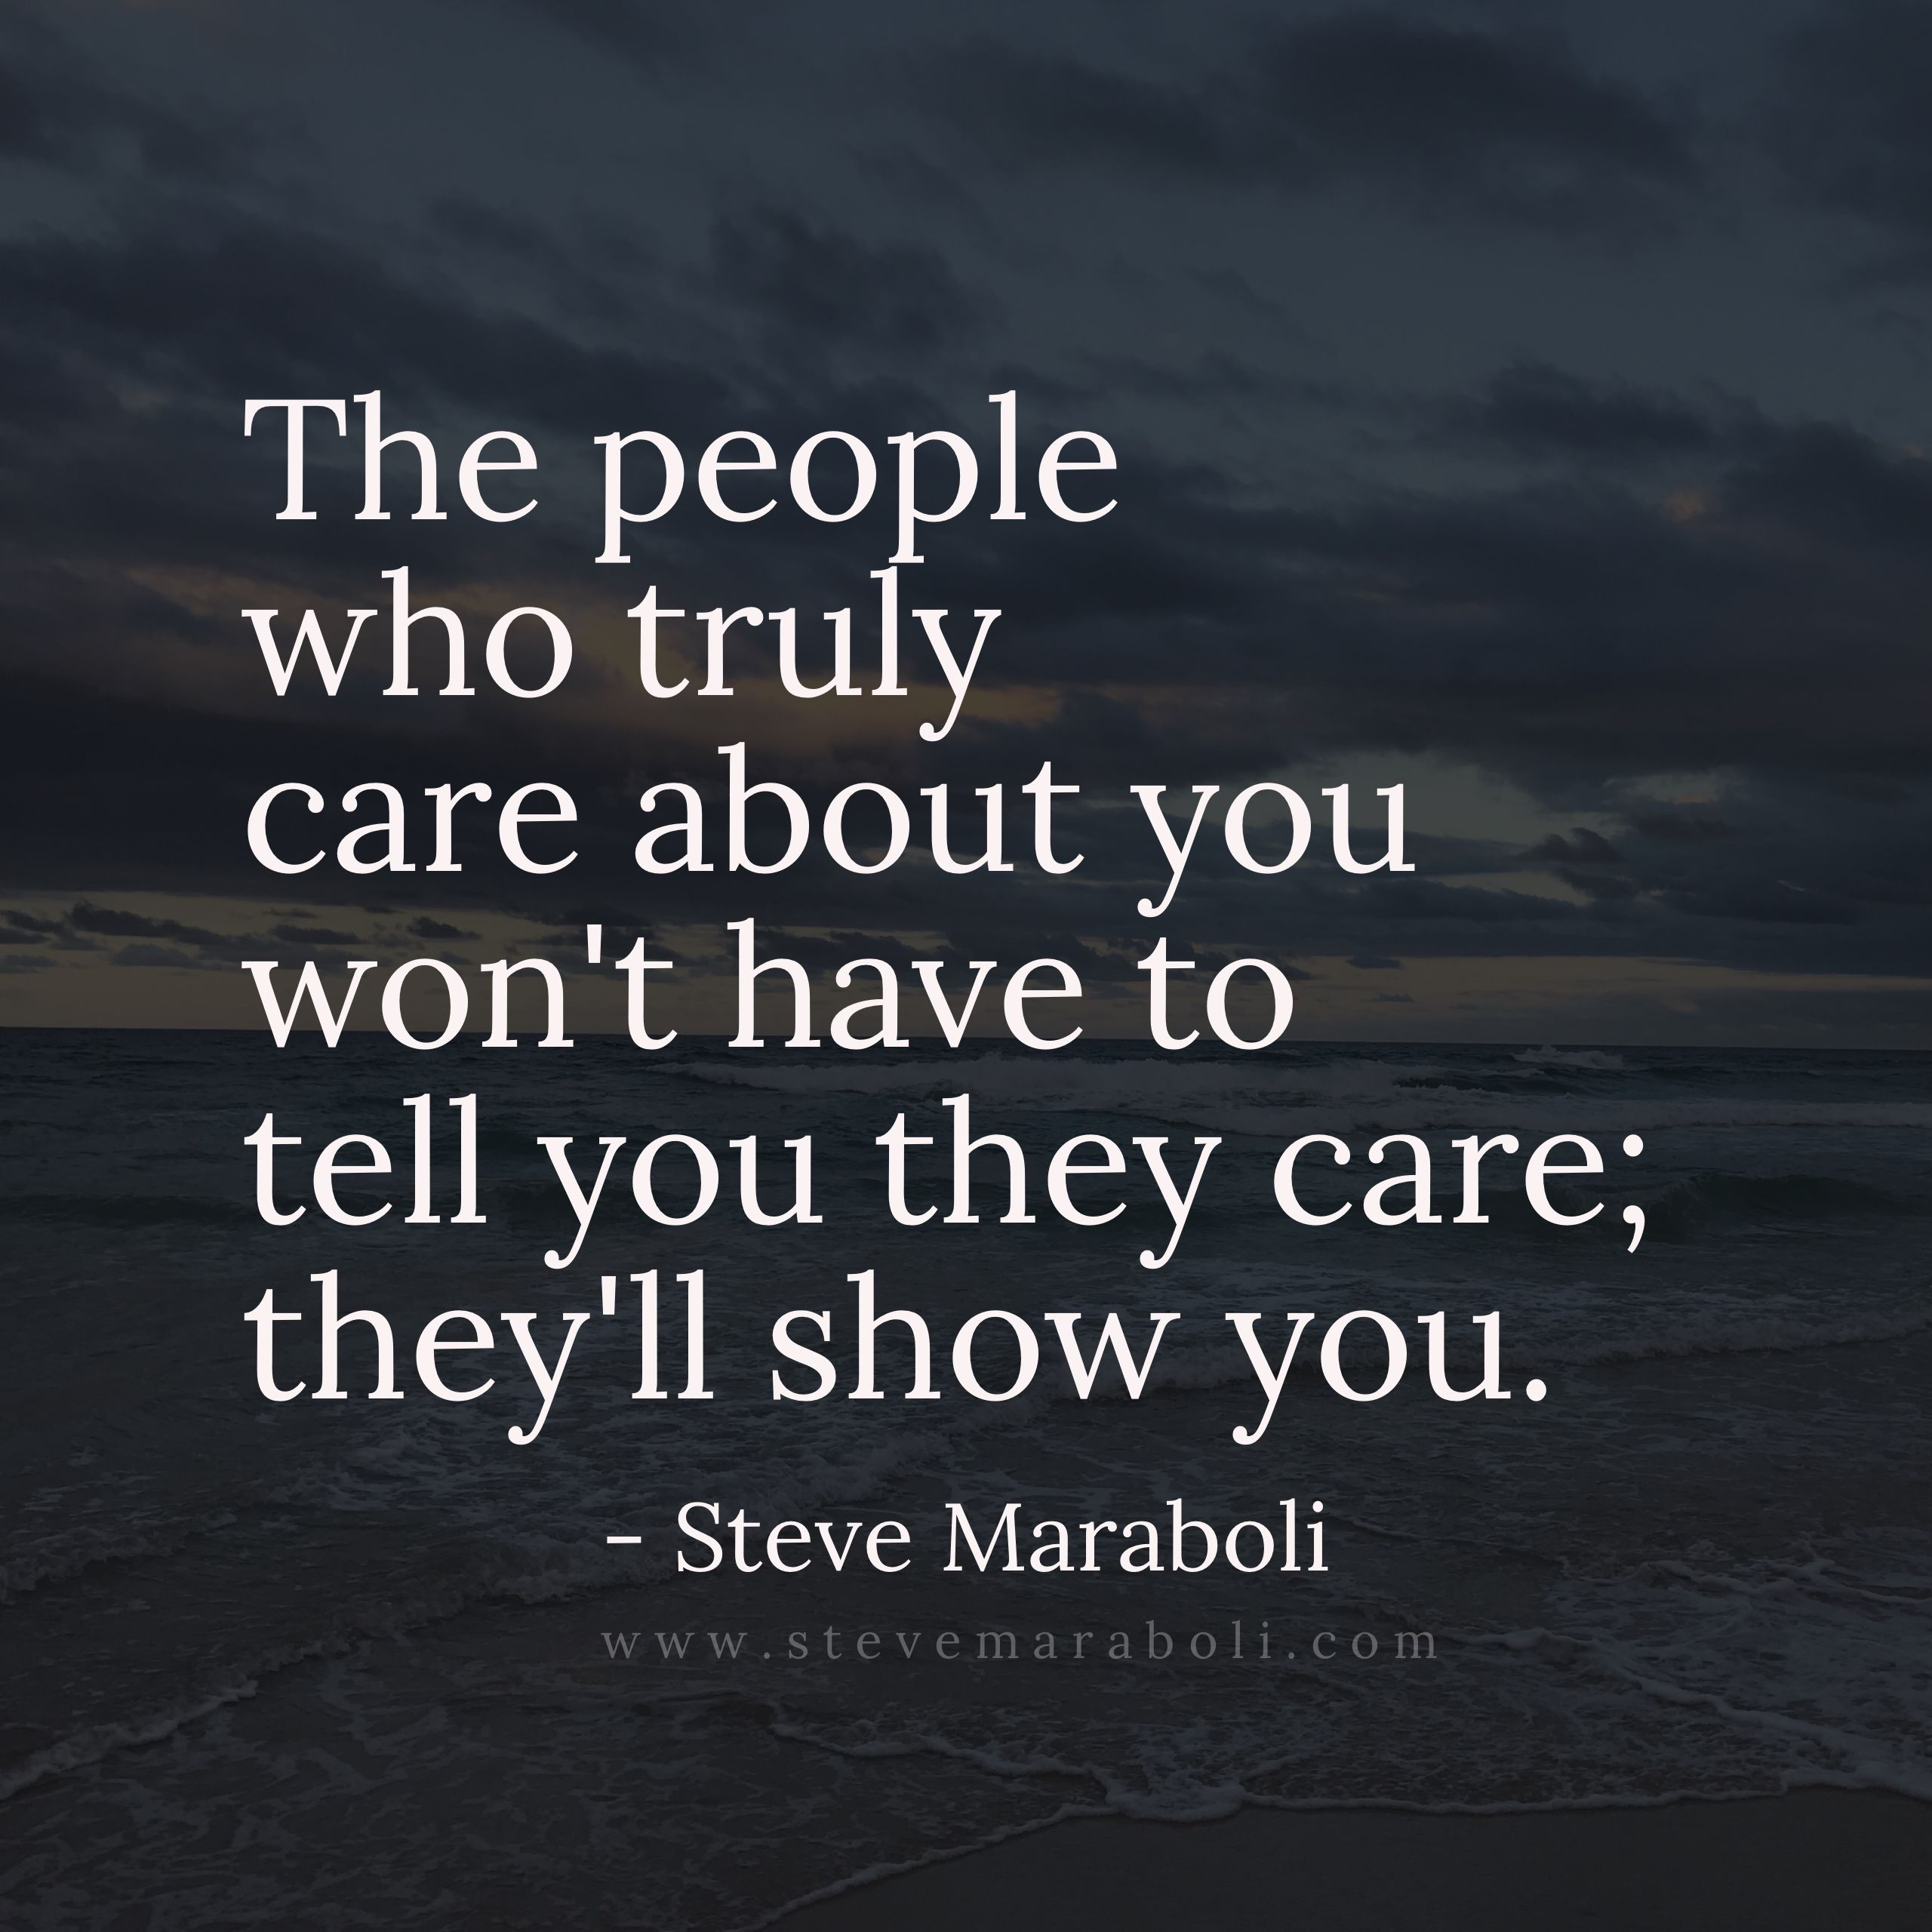 I Care About You Quotes: The People Who Truly Care About You Won't Have To Tell You